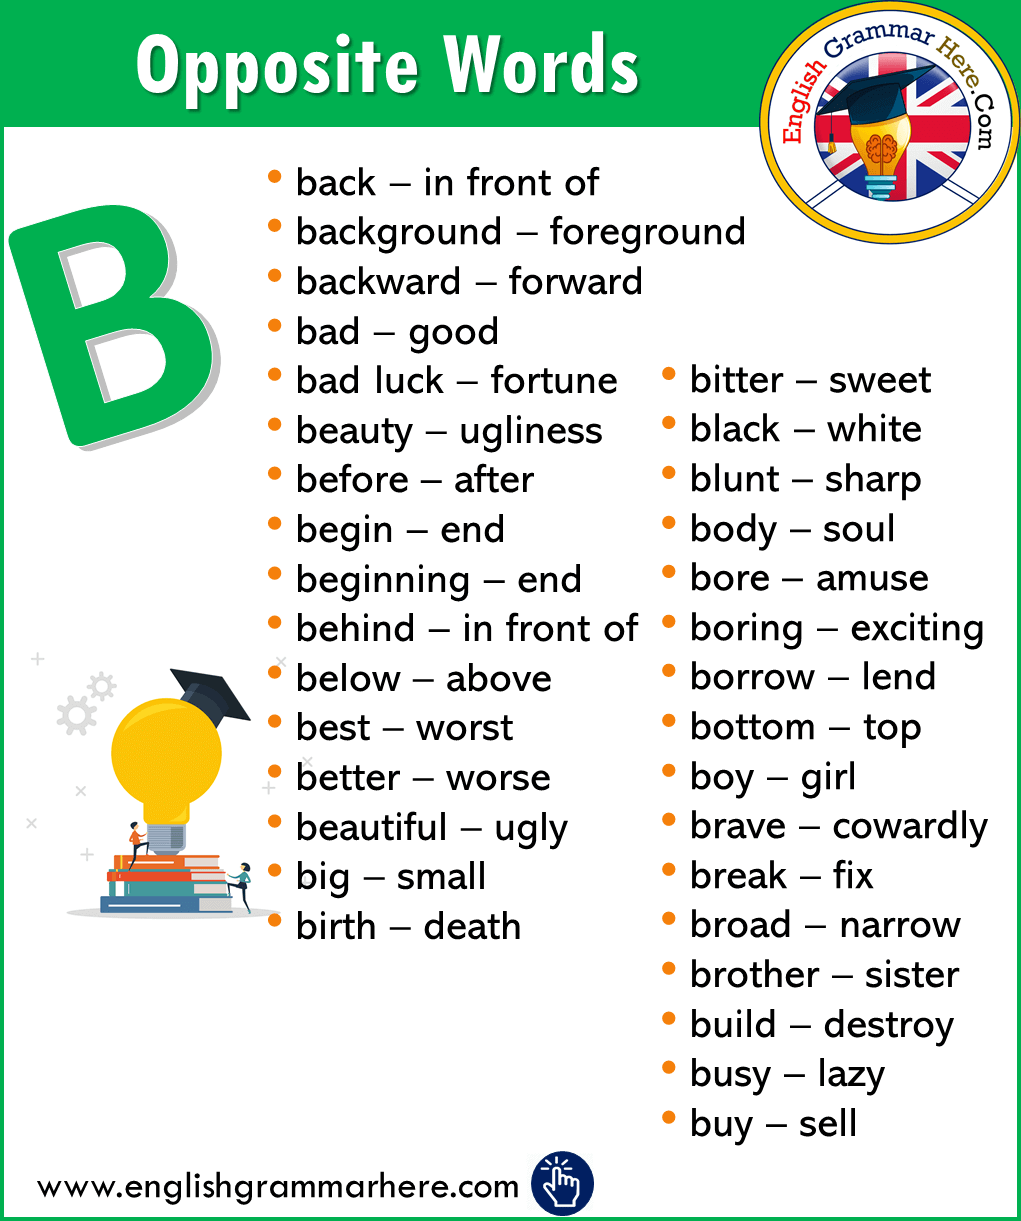 Alphabetical Opposite Word List – B